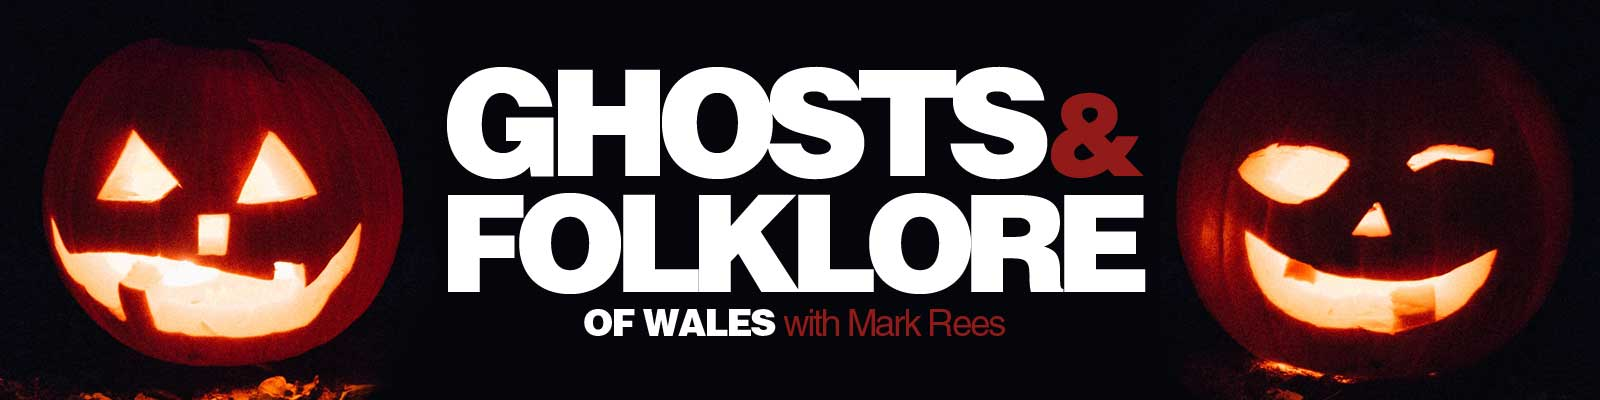 Spooky Halloween Folklore and Traditions of Wales: Ghosts & Folklore of Wales podcast Halloween special